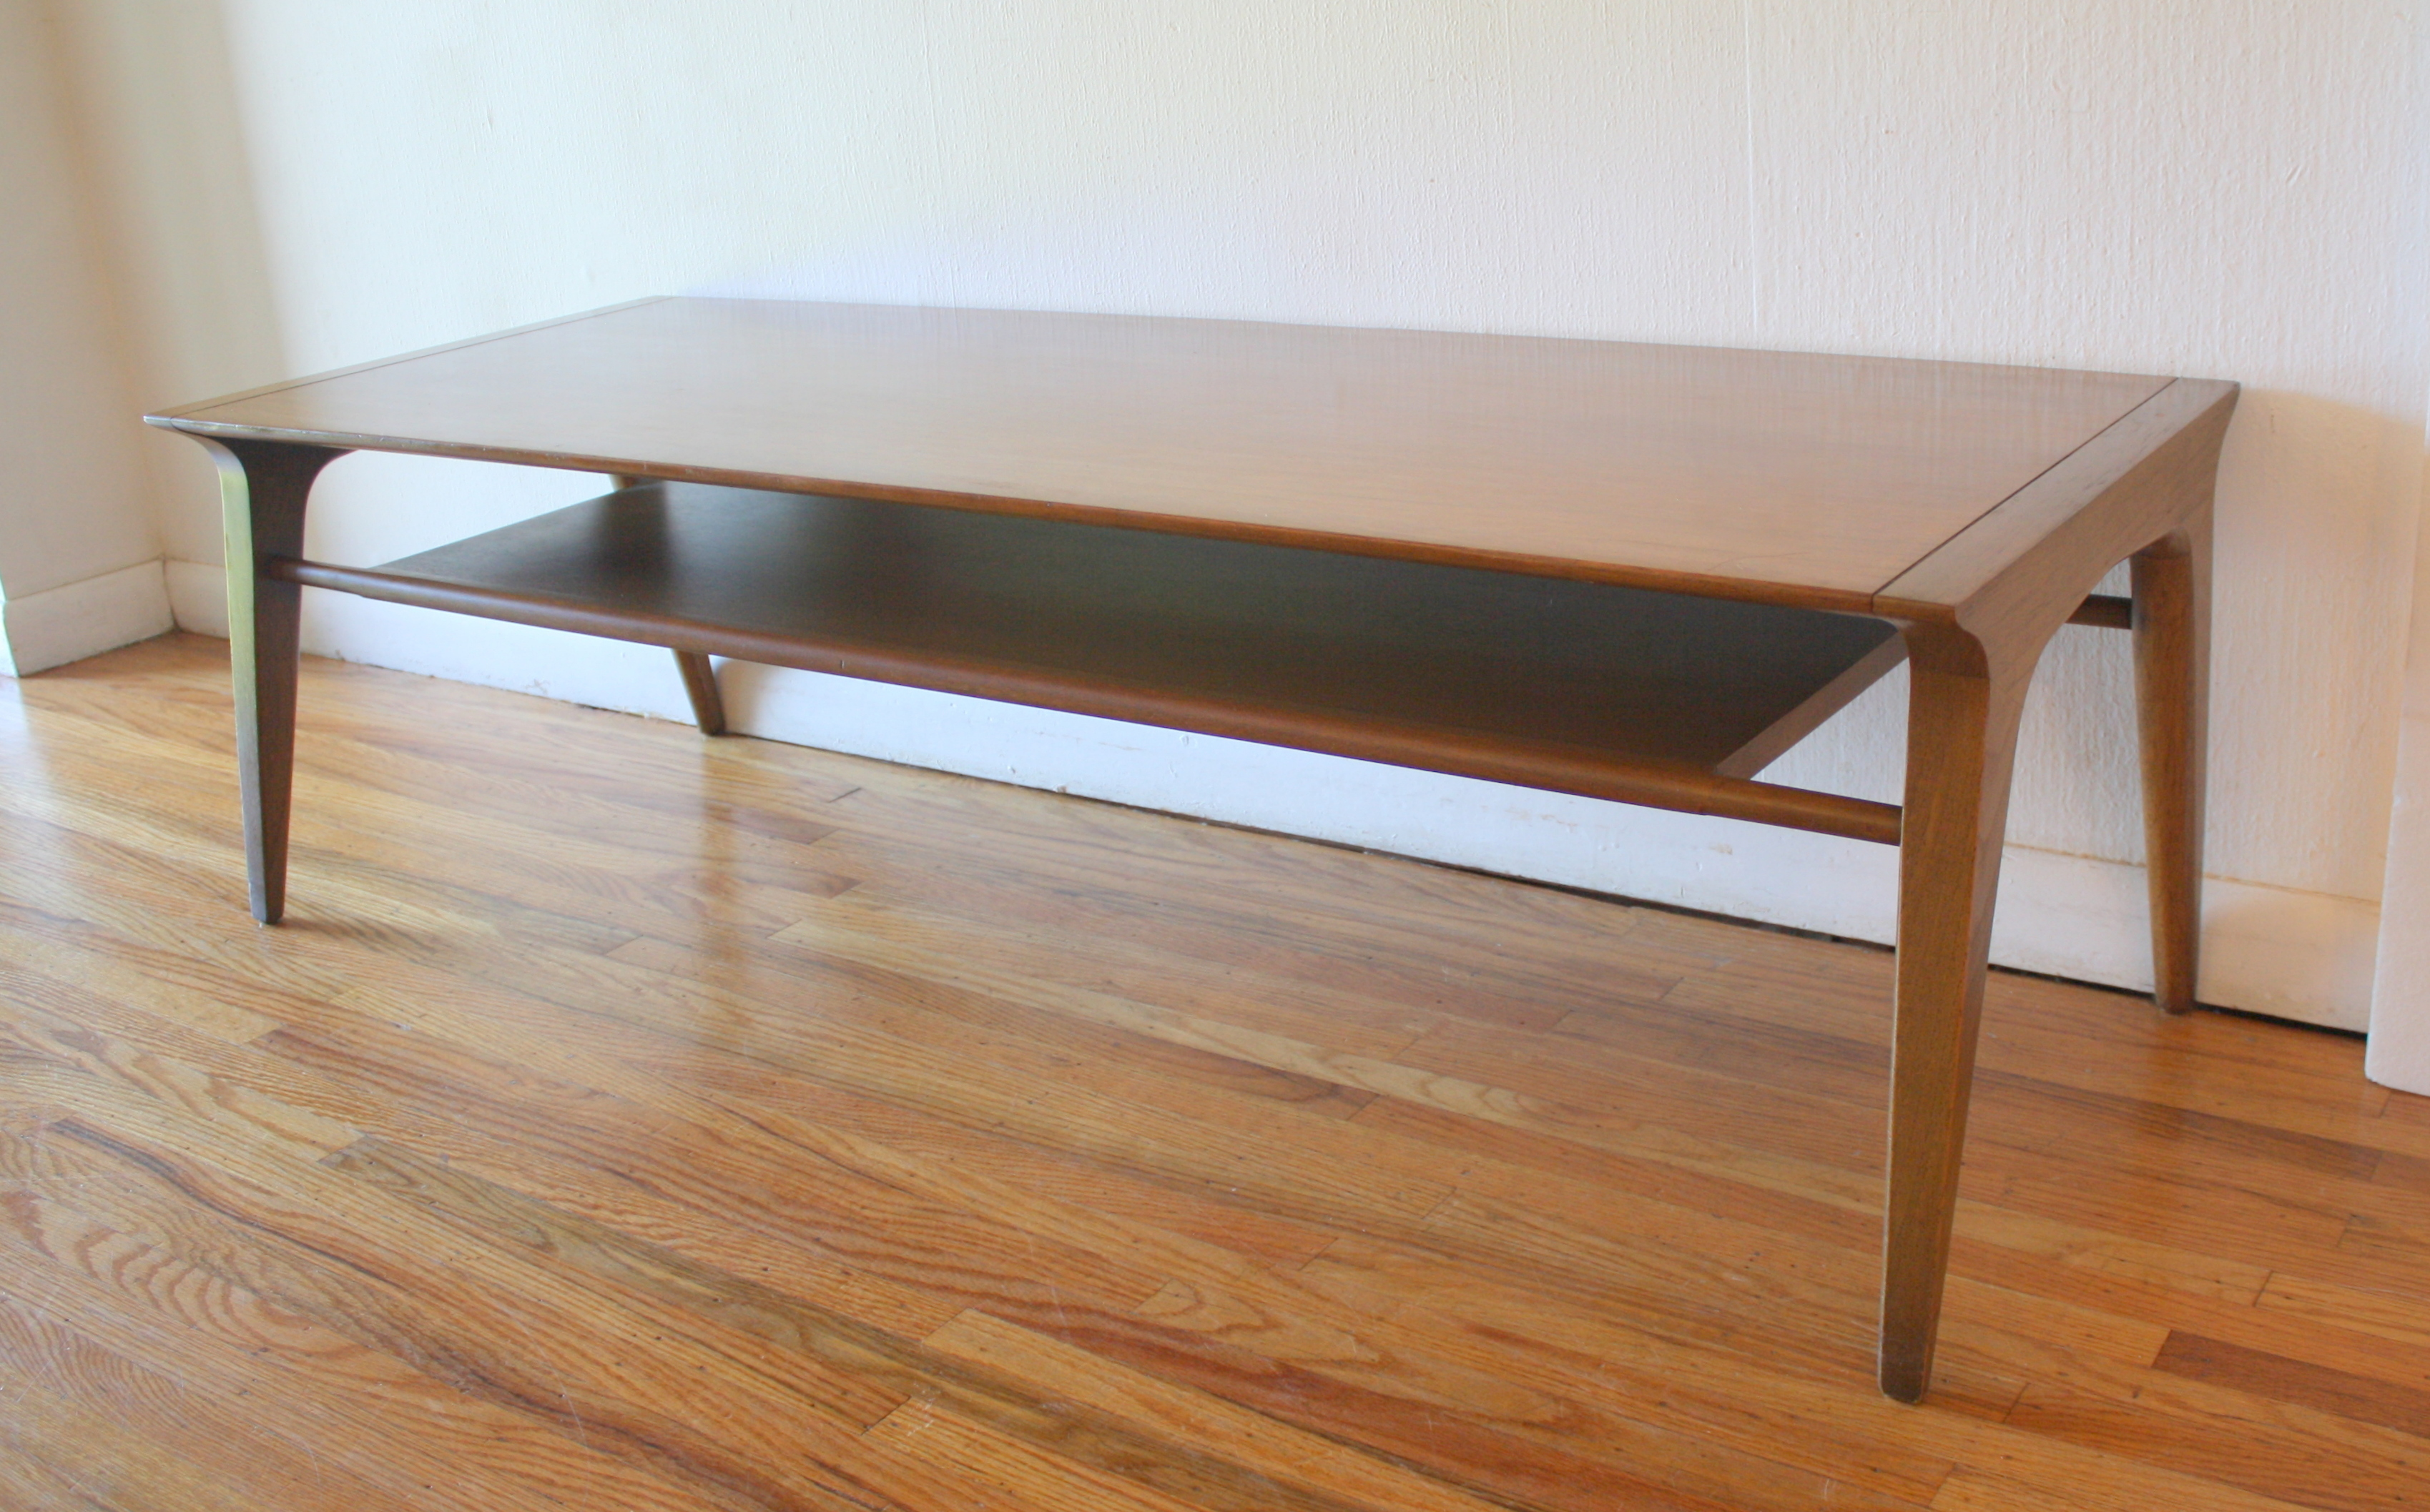 Drexel profile coffee table 1.JPG